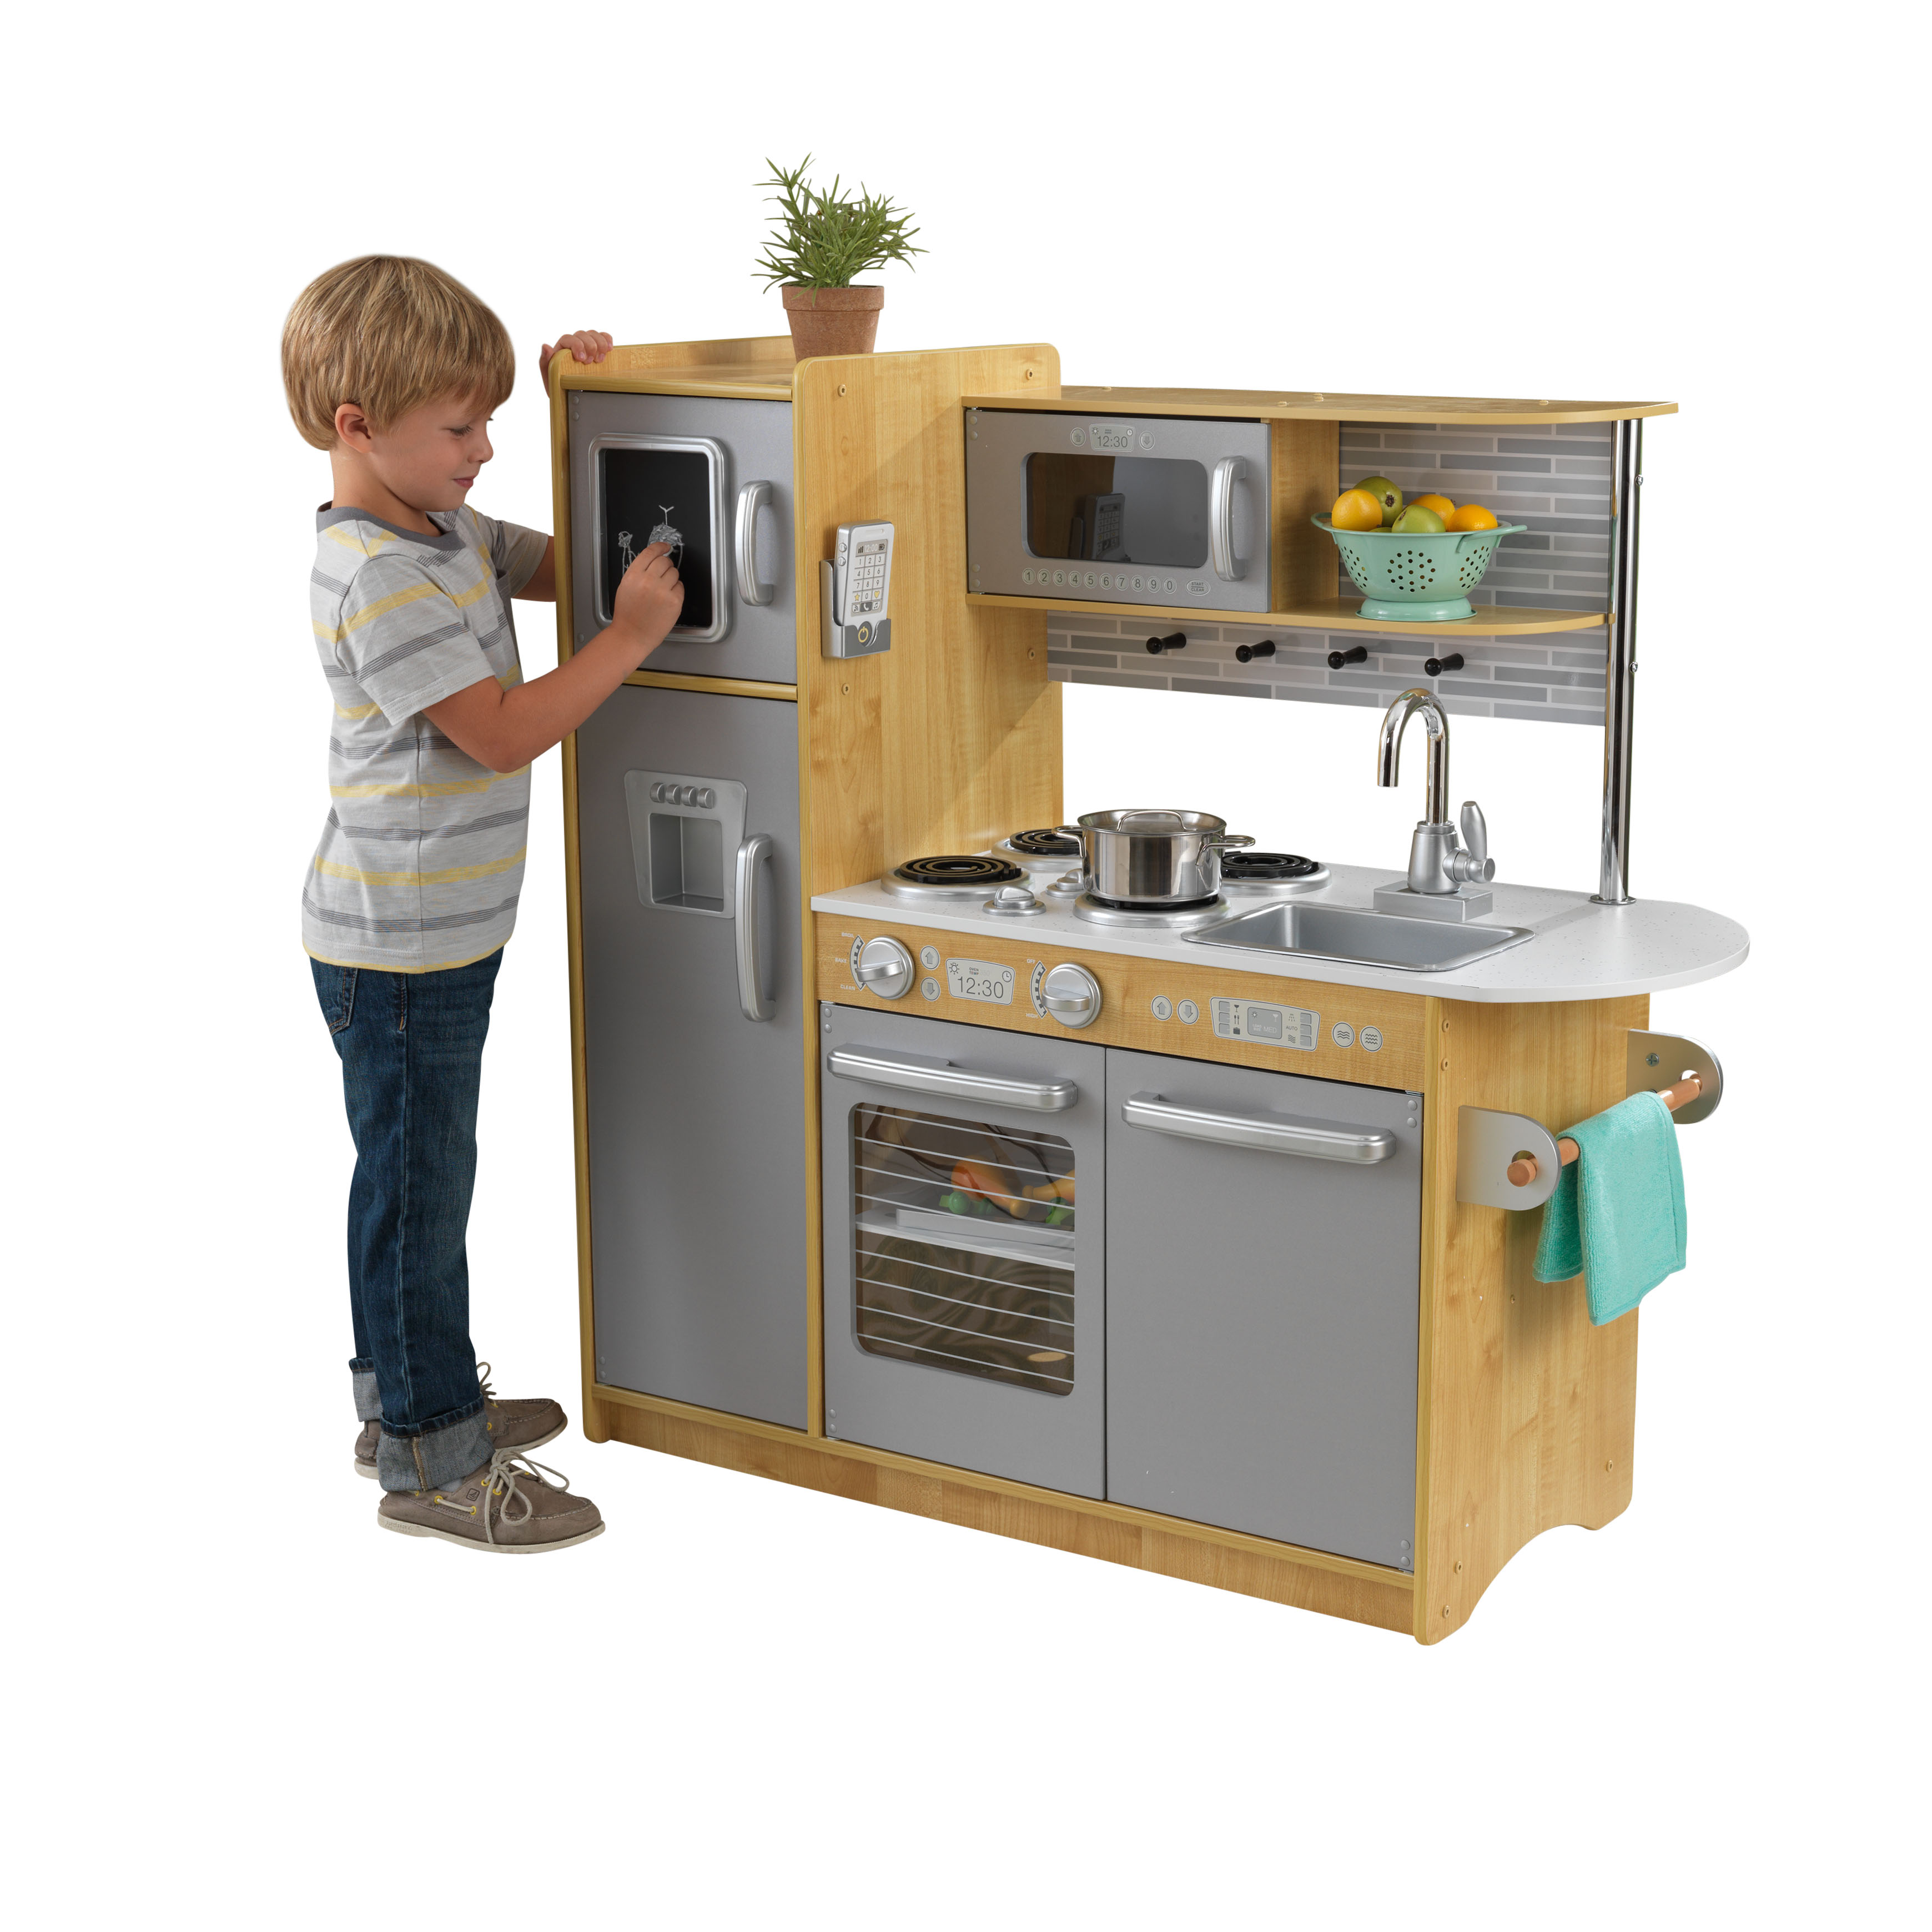 KidKraft Uptown Natural Play Kitchen